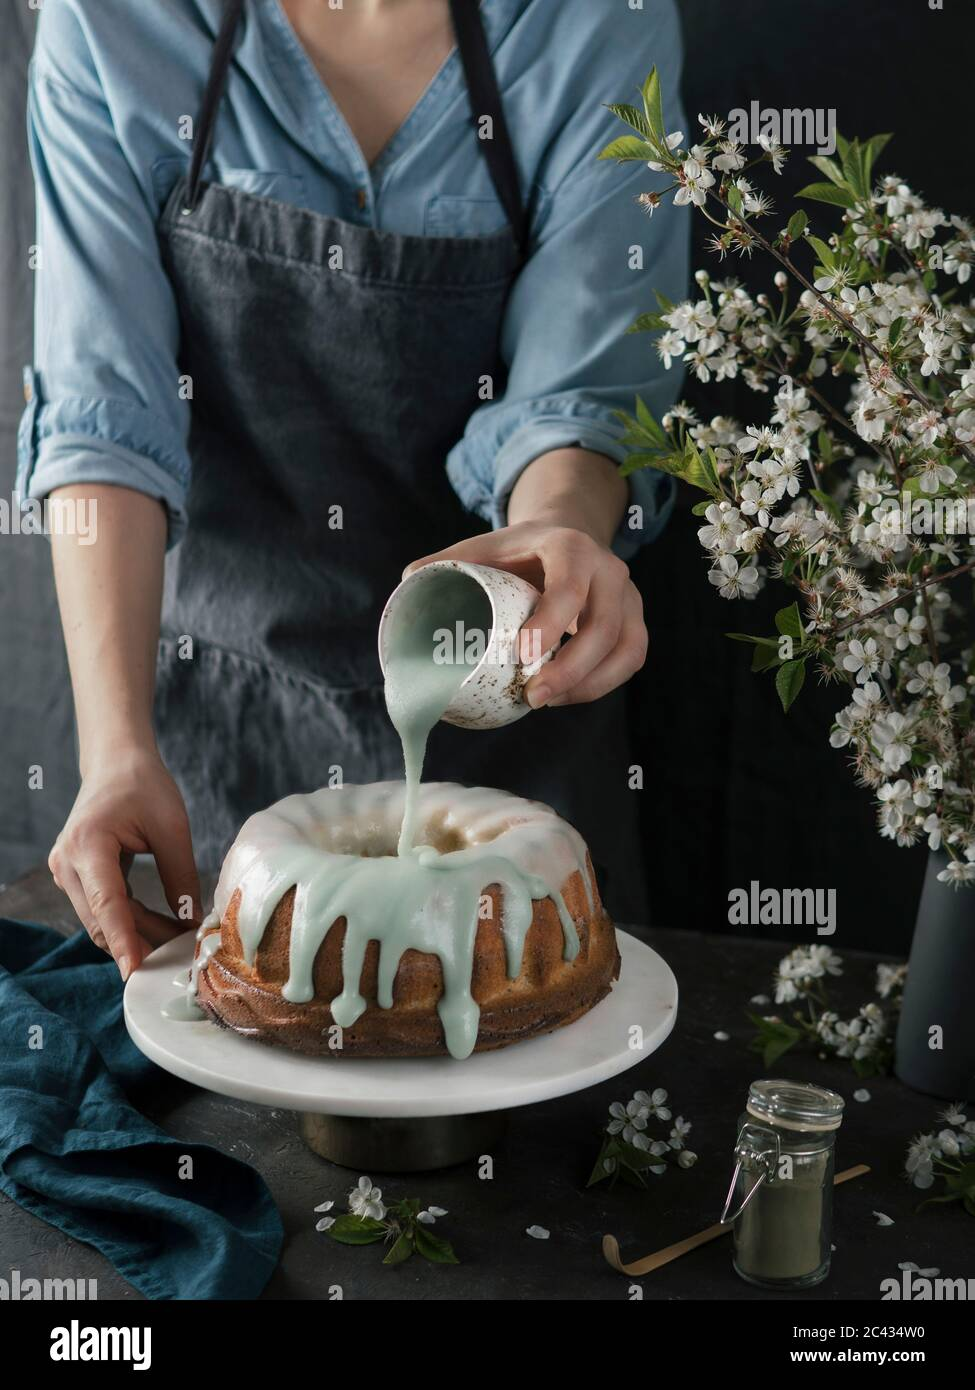 Young Woman In Blue Shirt And Gray Apron Pouring Green Matcha Glaze On Bundt Cake On Dark Background Bunt Cake On Marble Cake Stand And Green Tae Mat Stock Photo Alamy